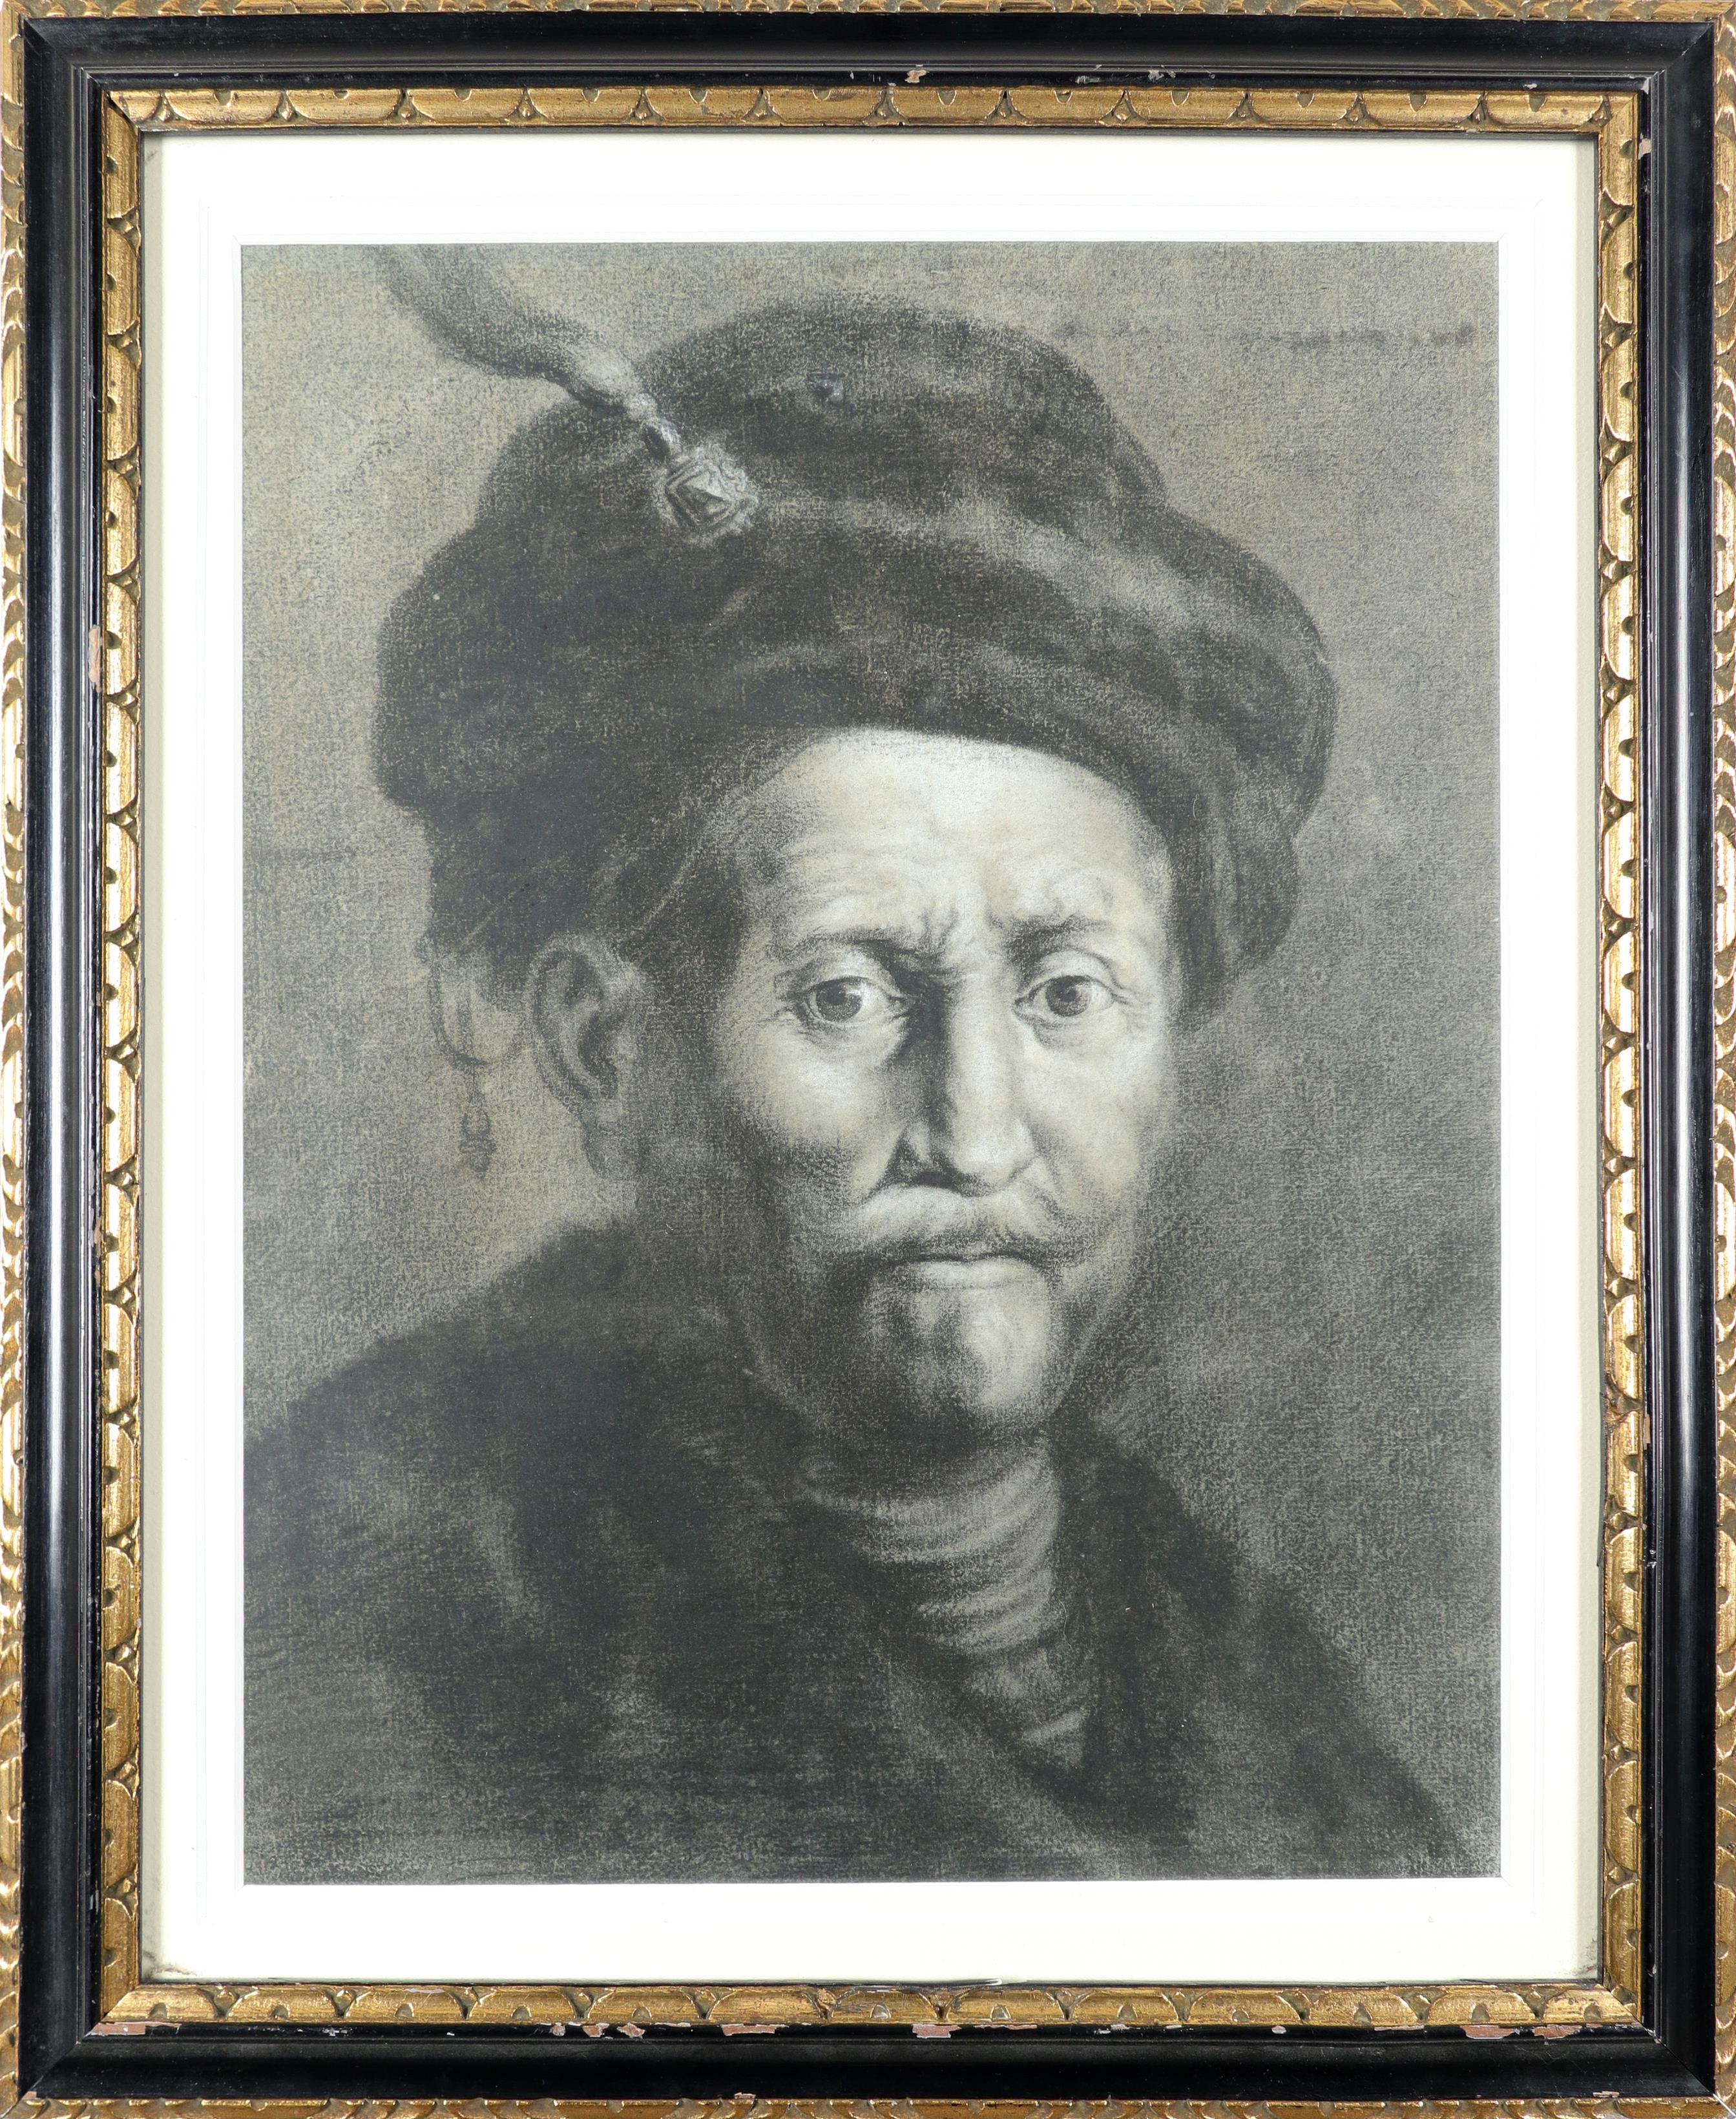 Thomas Worlidge (1700-1766) after Rembrandt van Rijn (Dutch 1606-1669) Bust of a man in a turban - Image 2 of 3